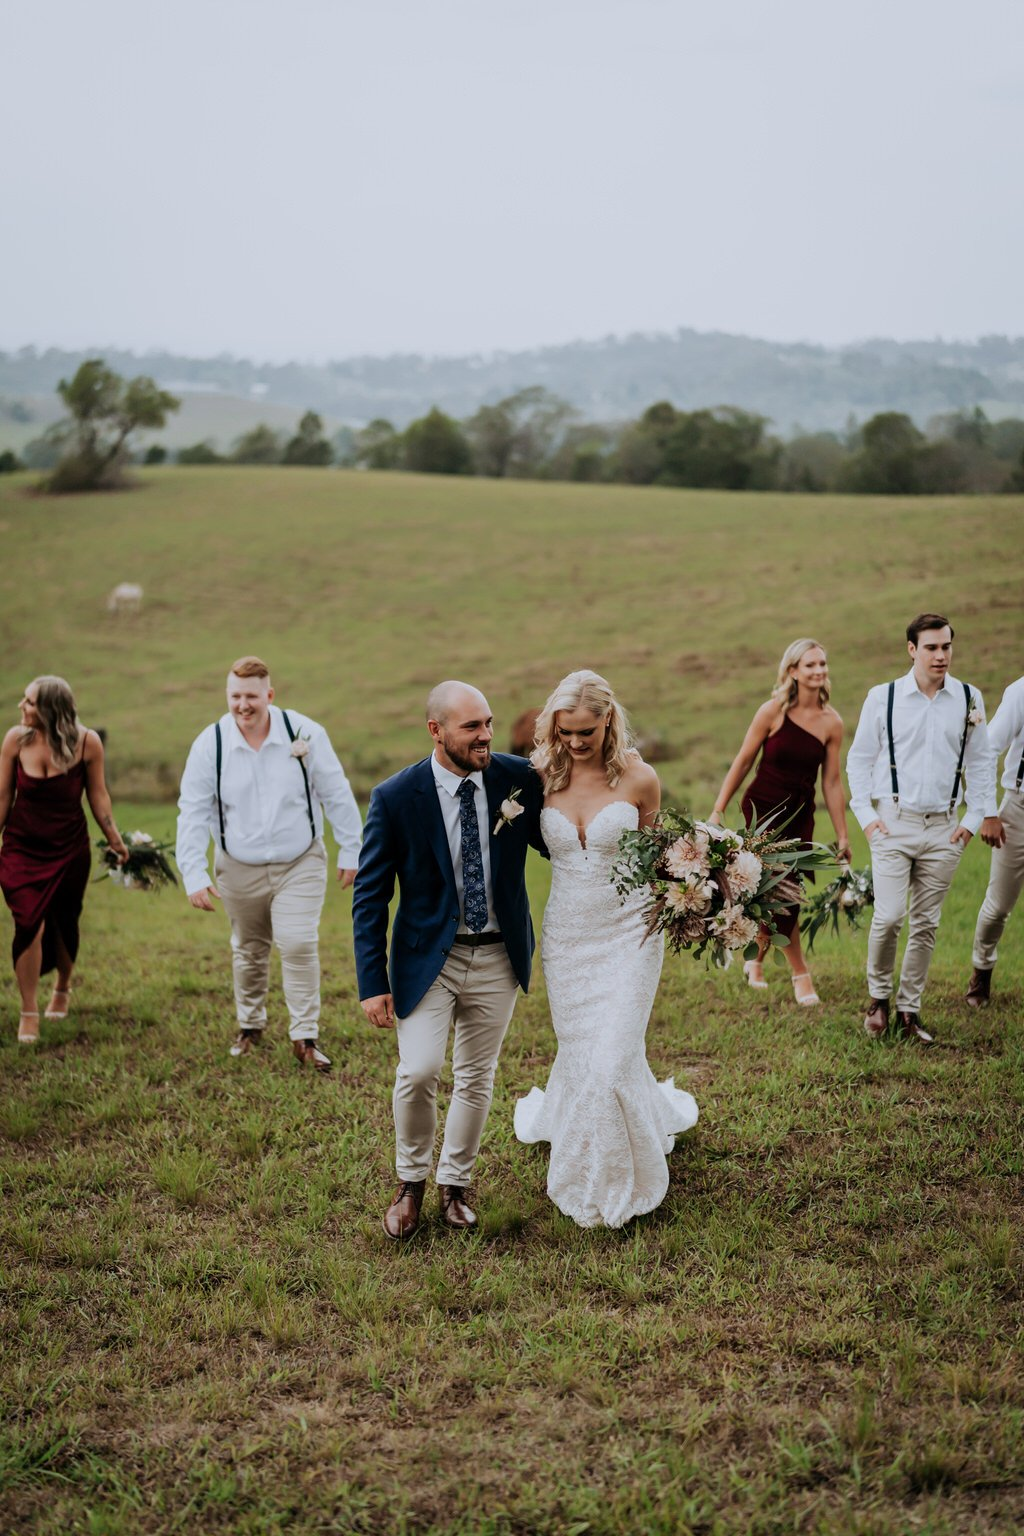 ava-me-photography-jade-simon-loxley-bellbird-hill-kurrajong-heights-wedding-655